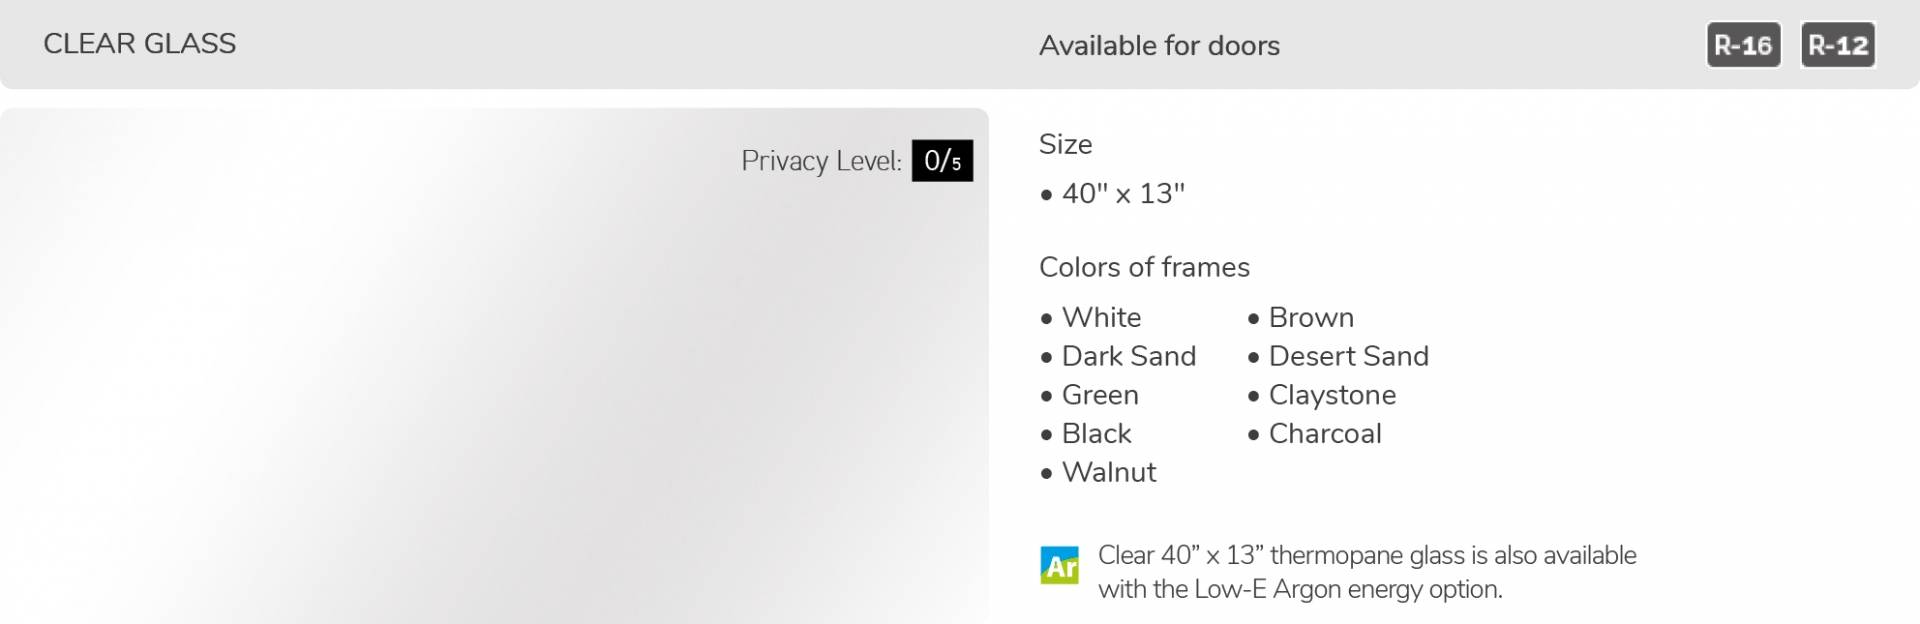 Clear glass, 40' x 13', available for doors R-16 and R-12